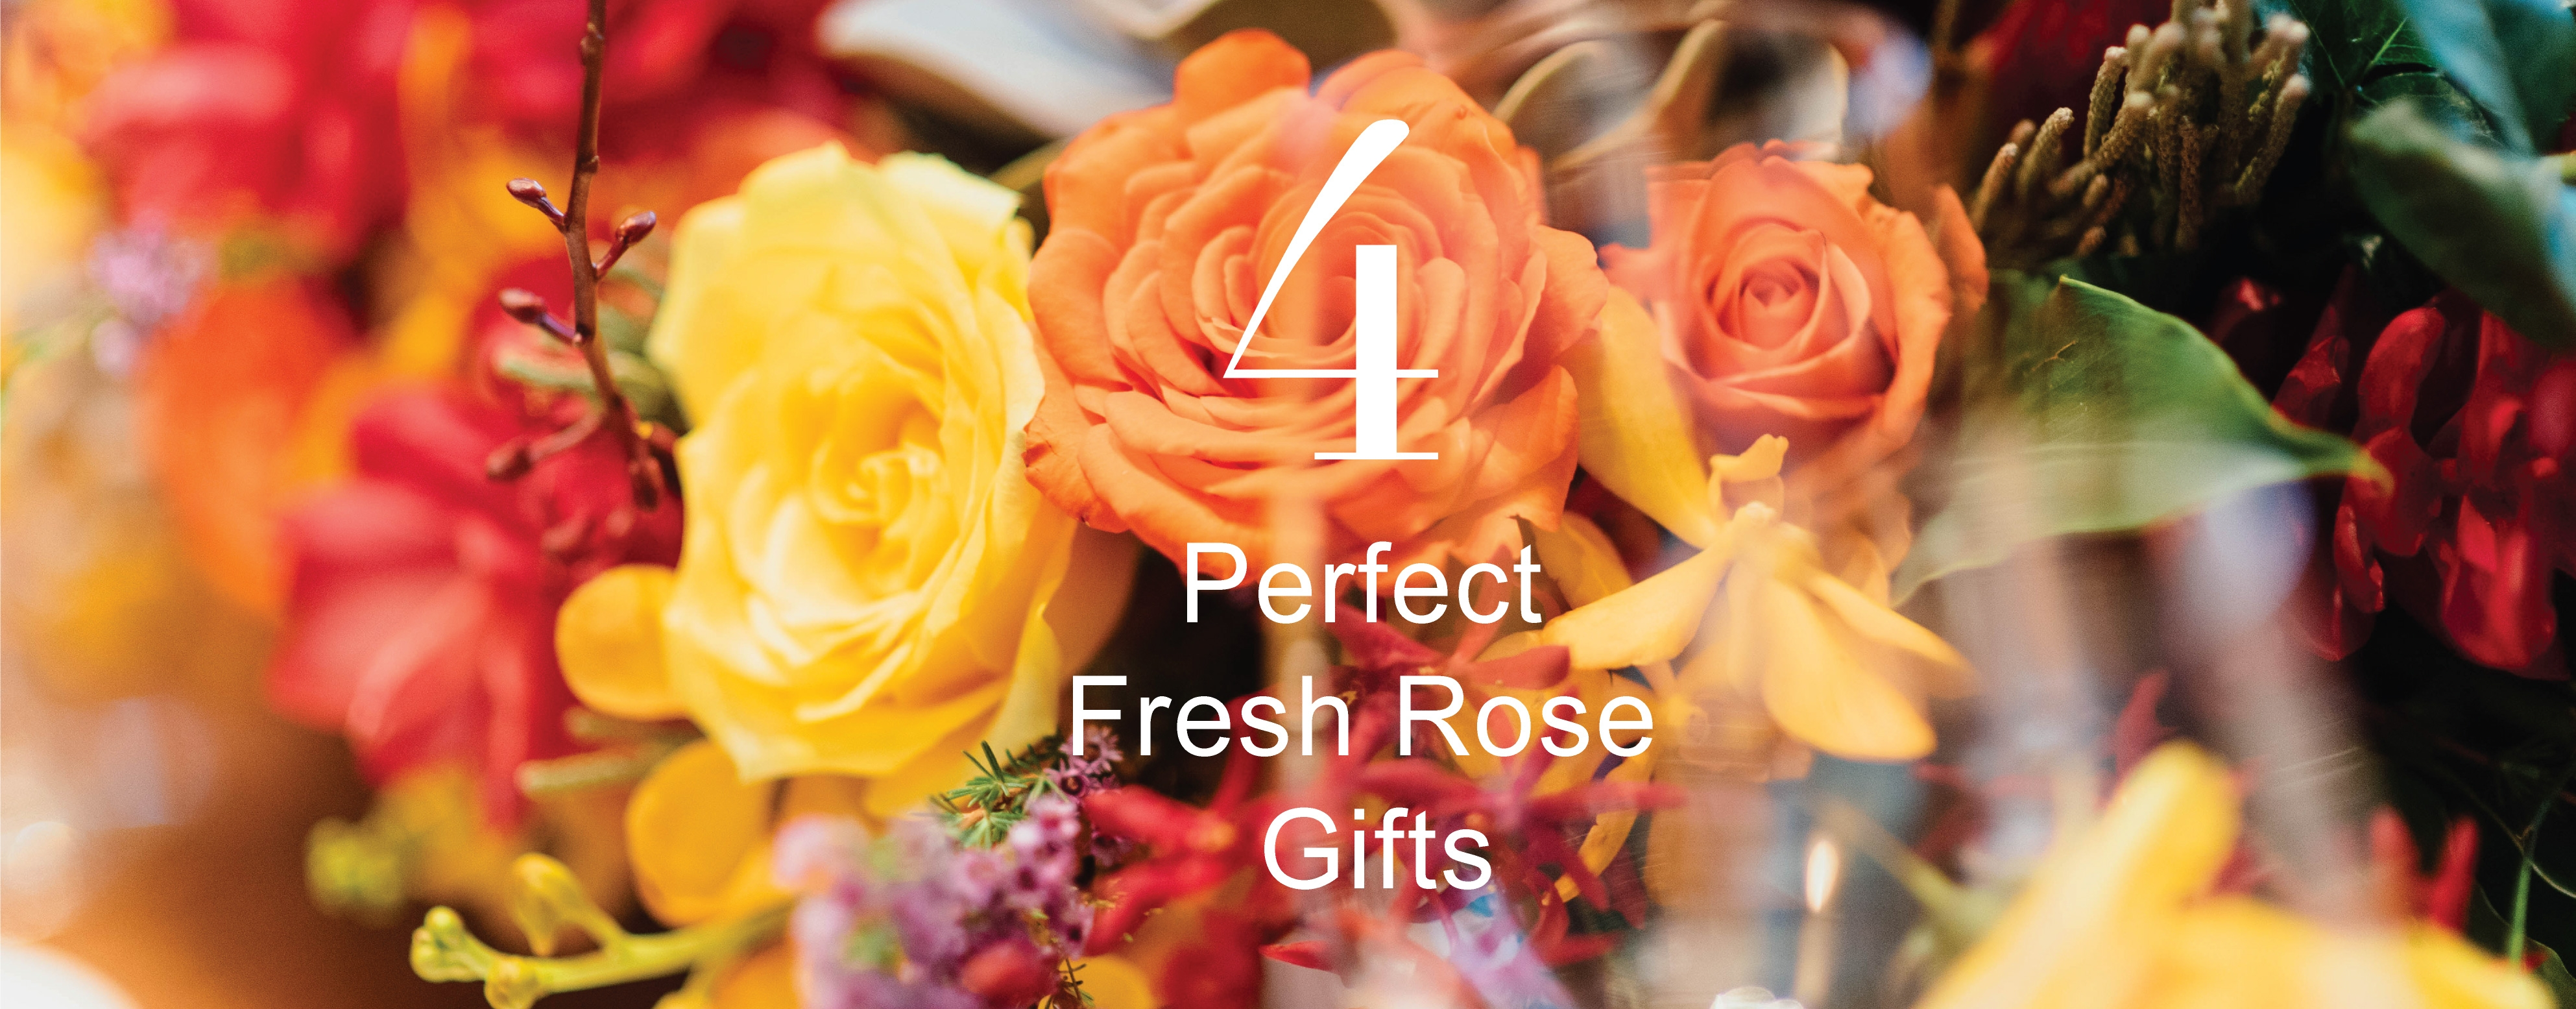 H4 Perfect Fresh Rose Gifts